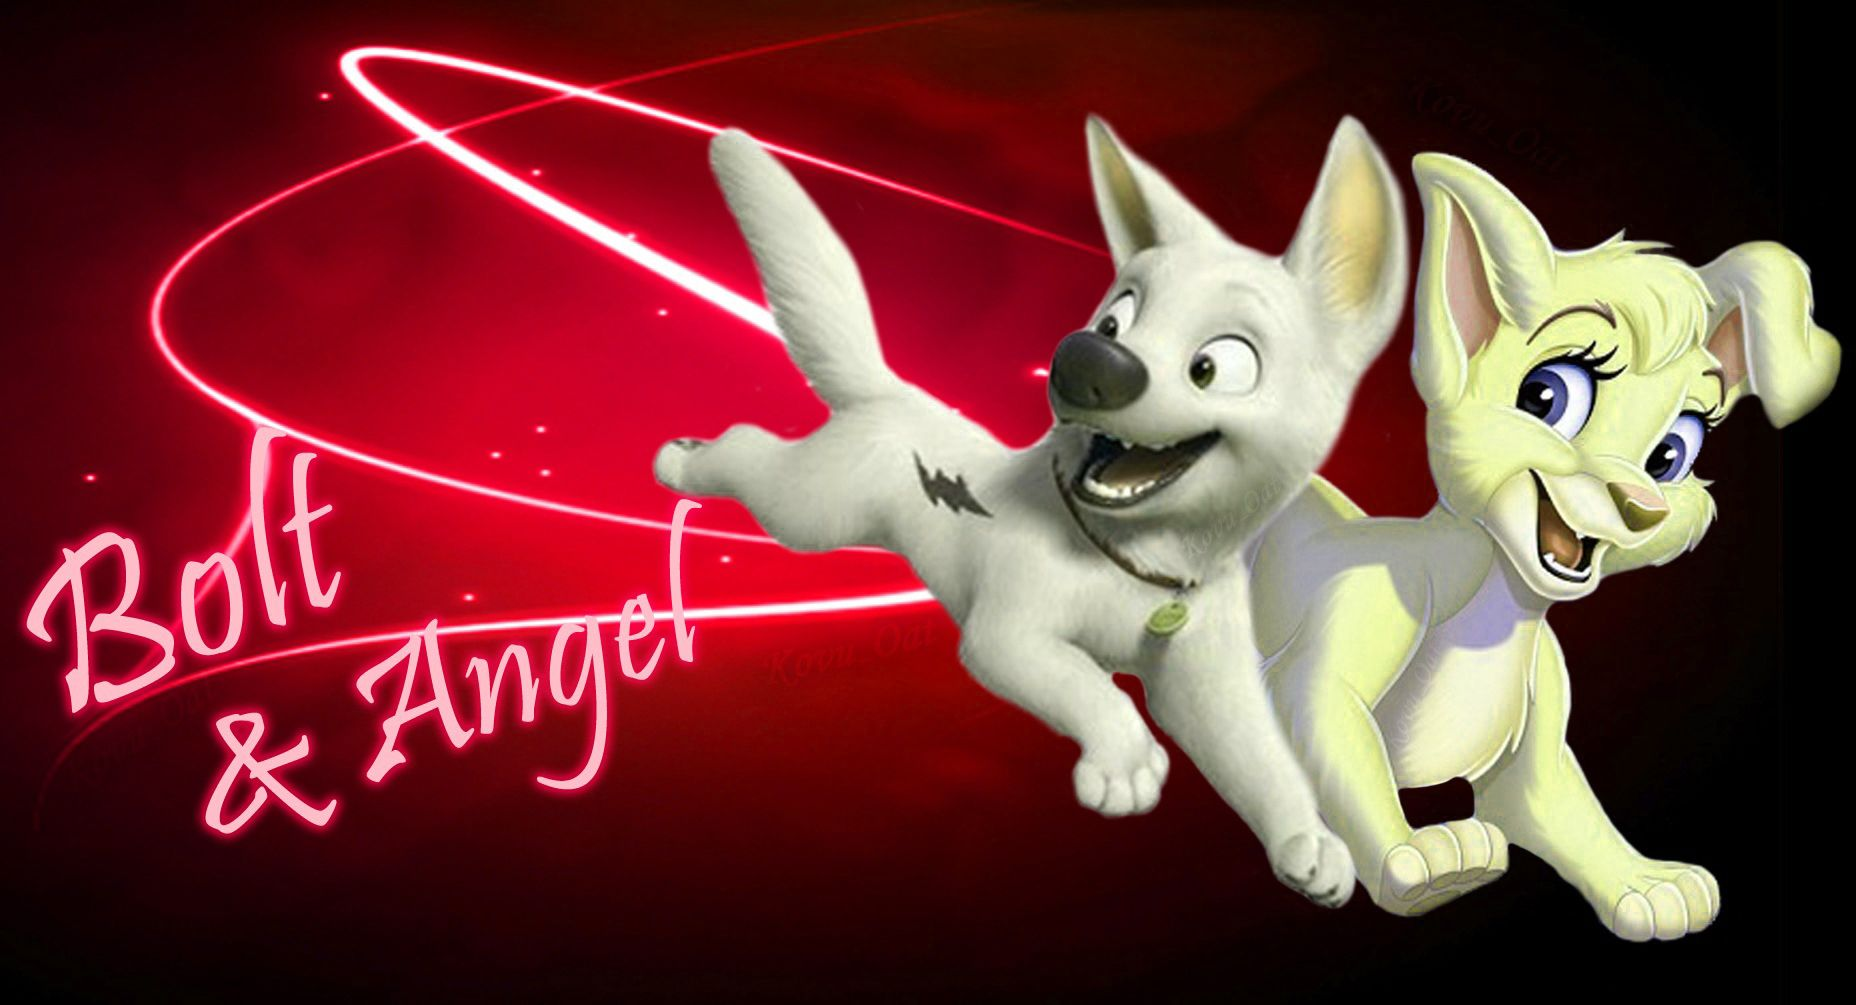 Disney angel and bolt cute love hd wallpapers love couples disney angel and bolt cute love hd wallpapers voltagebd Images